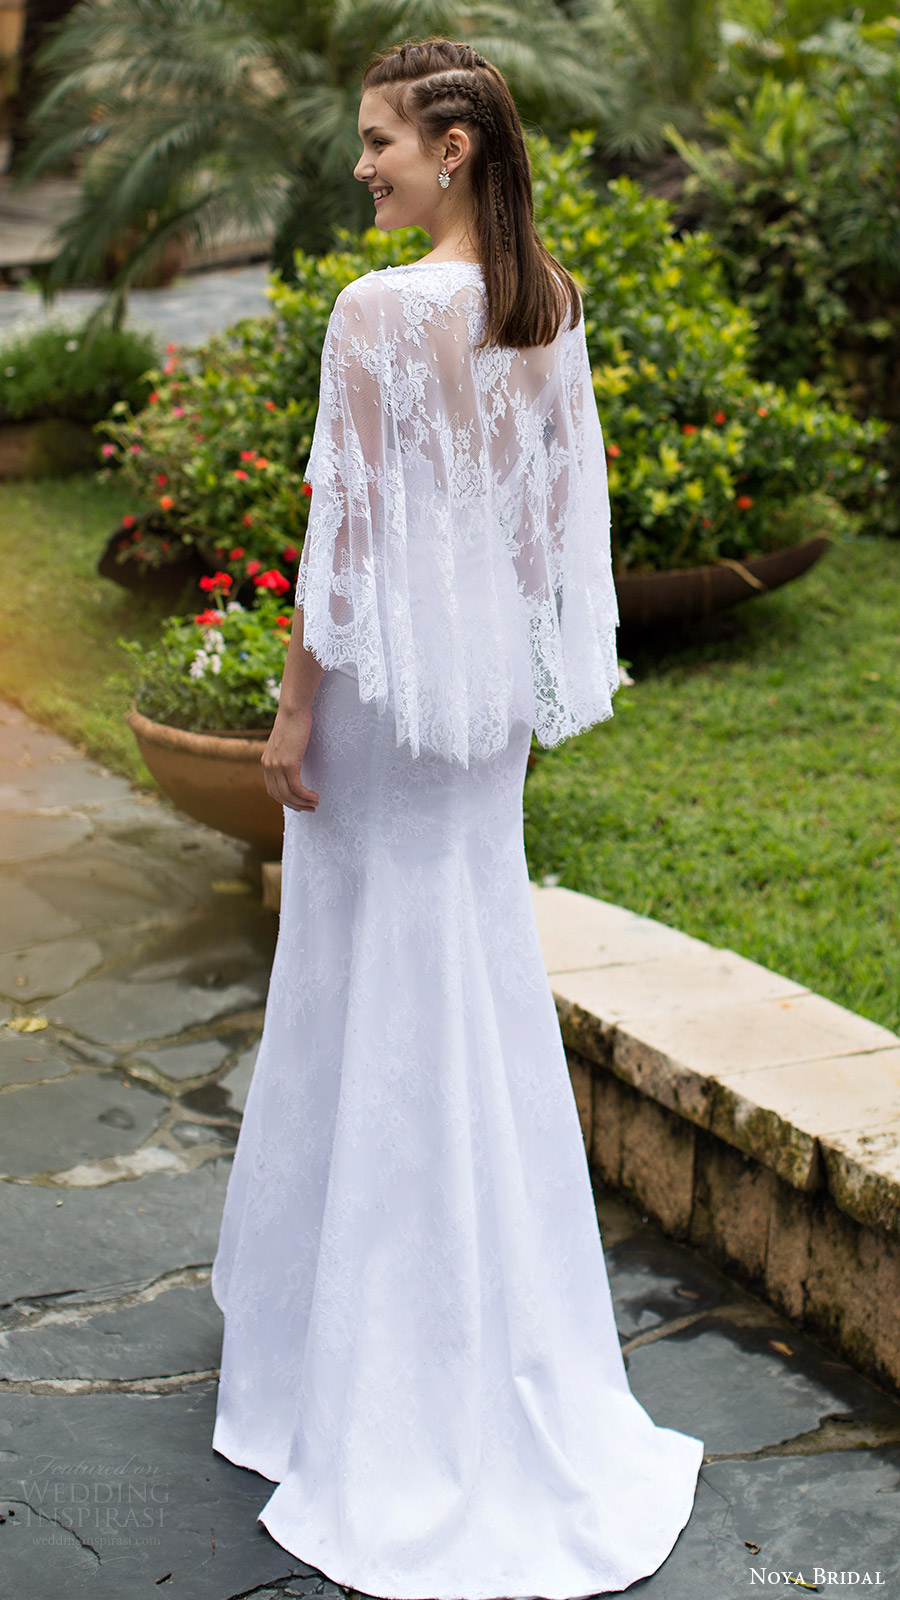 Noya bridal aria collection wedding dresses wedding for Wedding dress with a cape